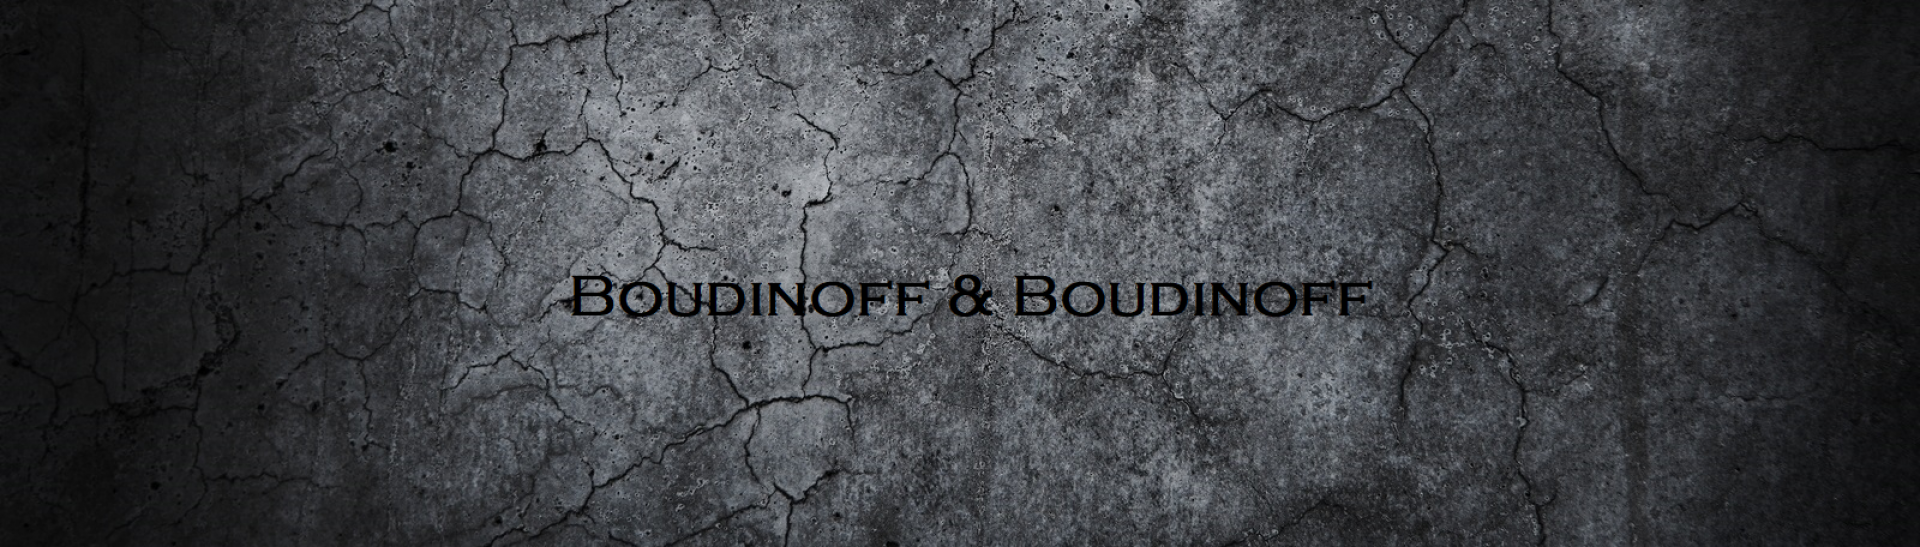 BOUDINOFF & BOUDINOFF LAW OFFICE